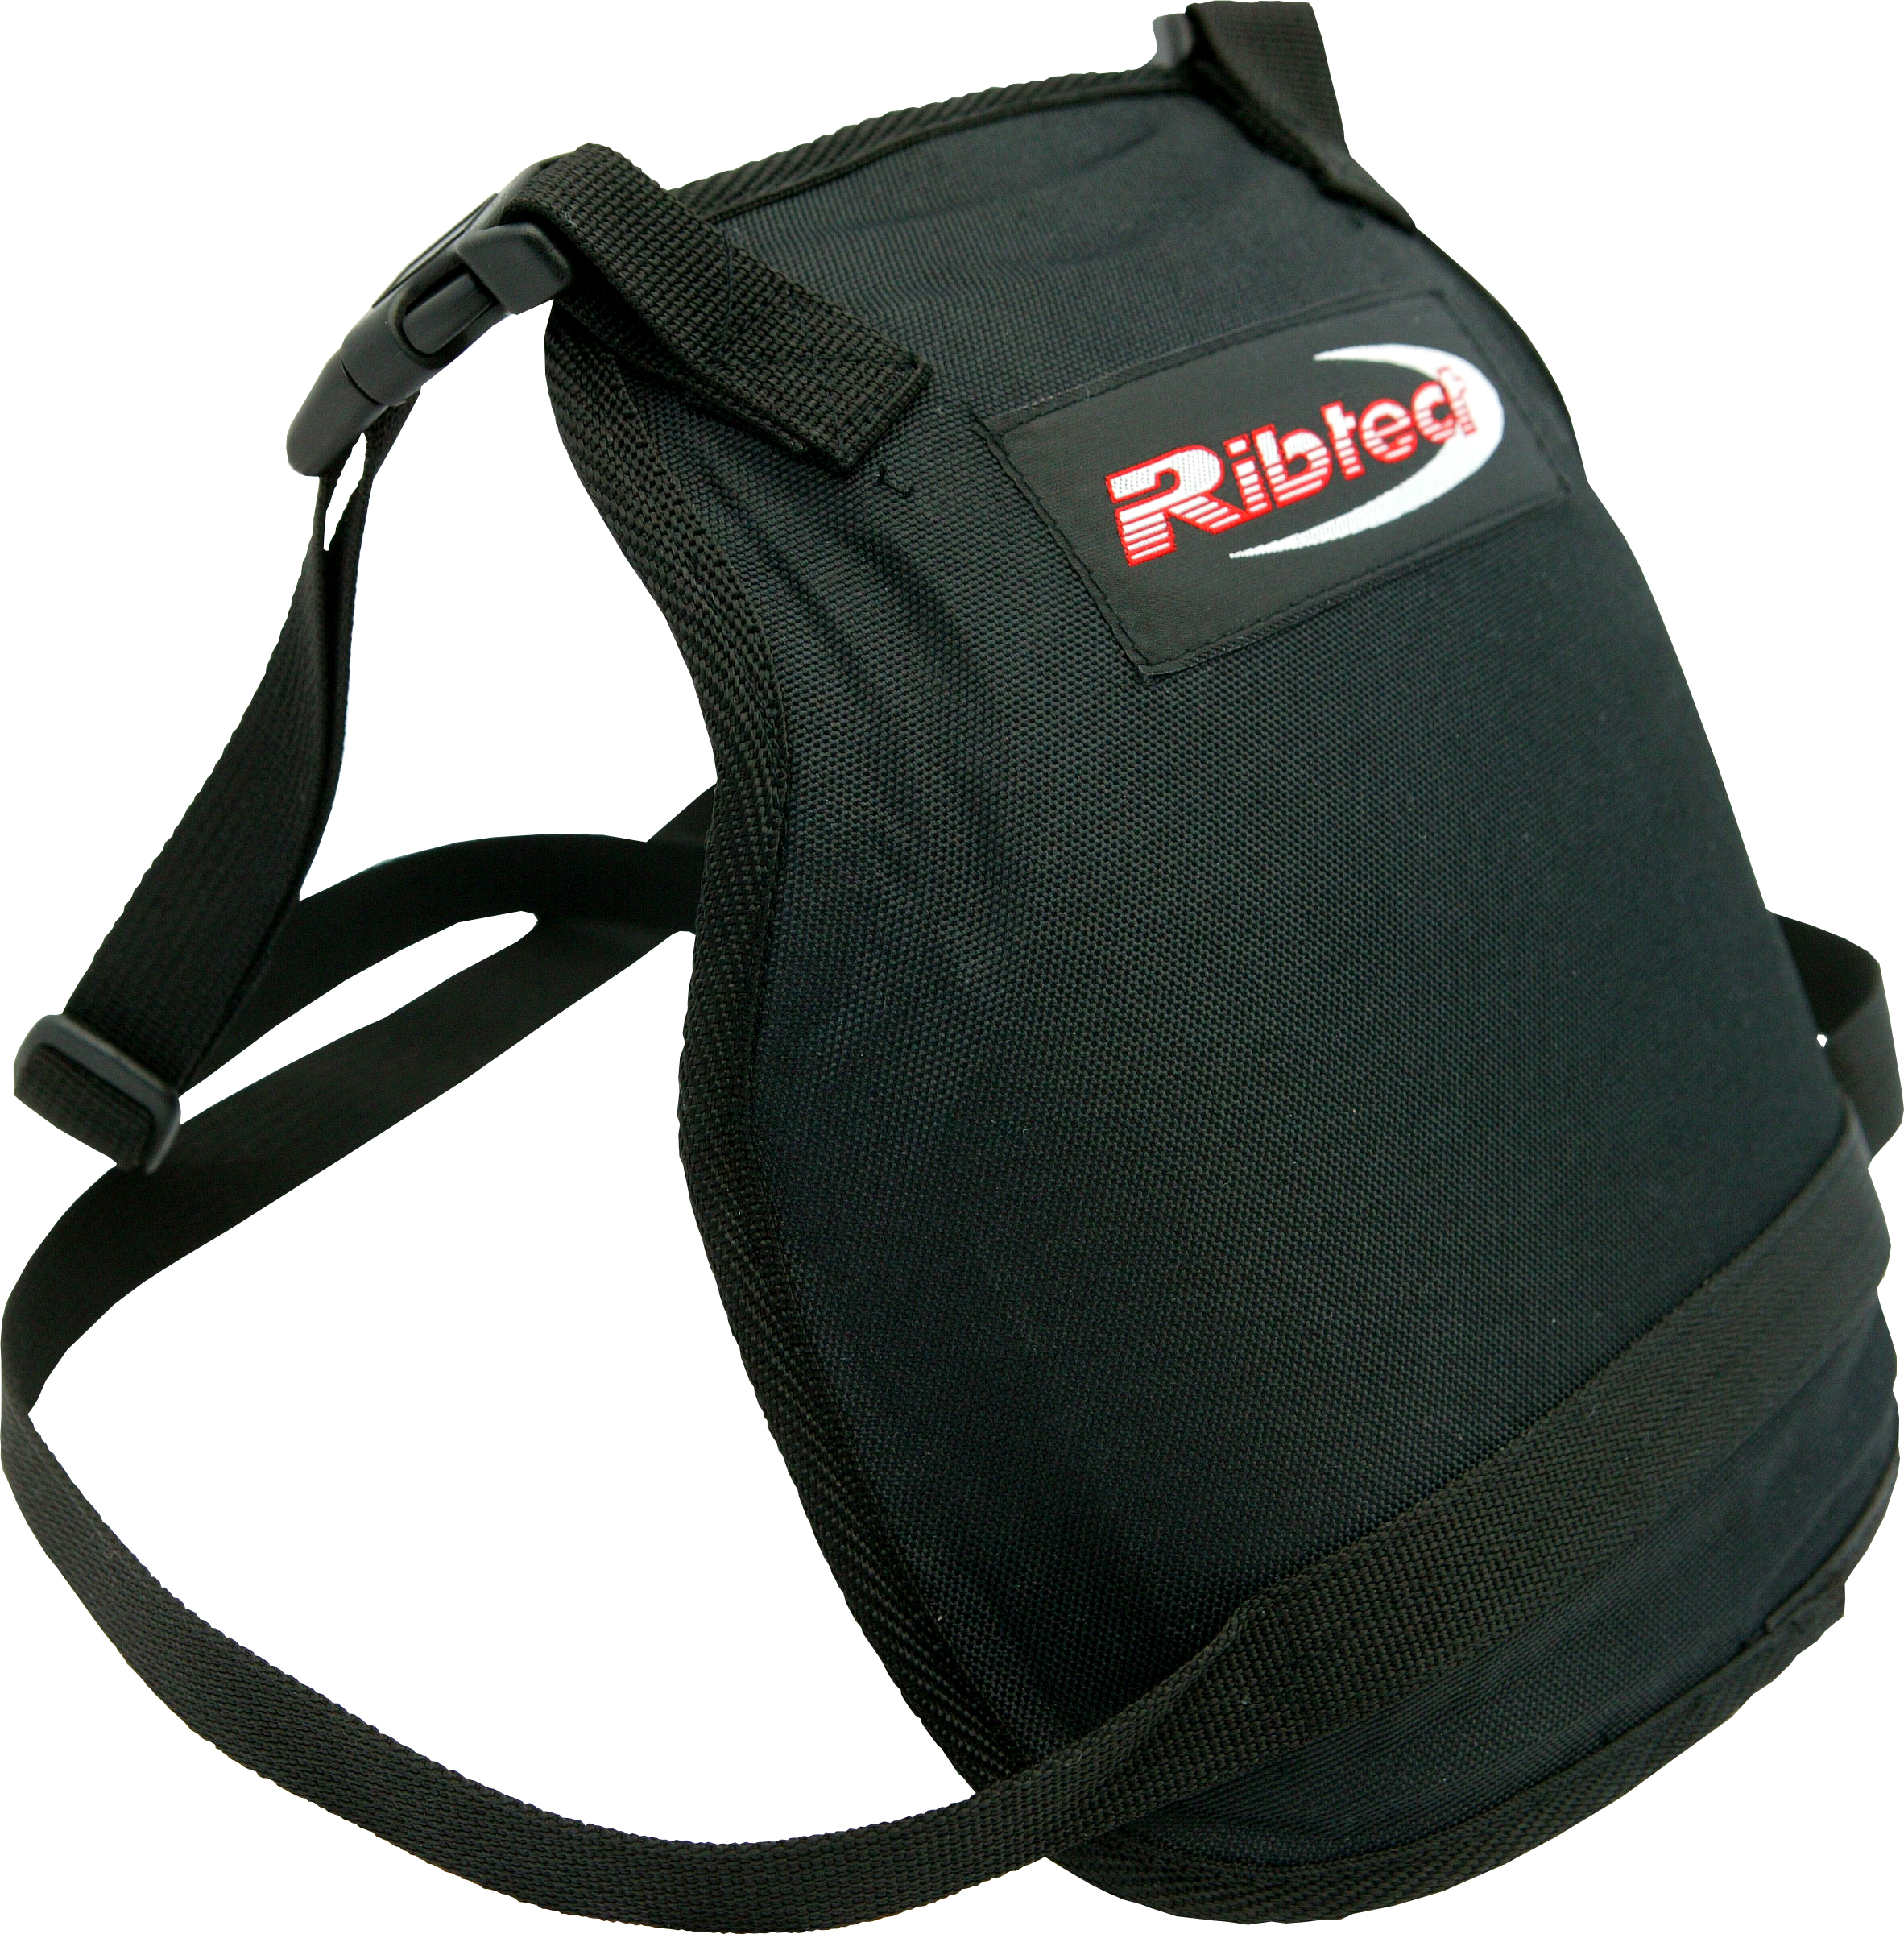 Karting Chest Protectors